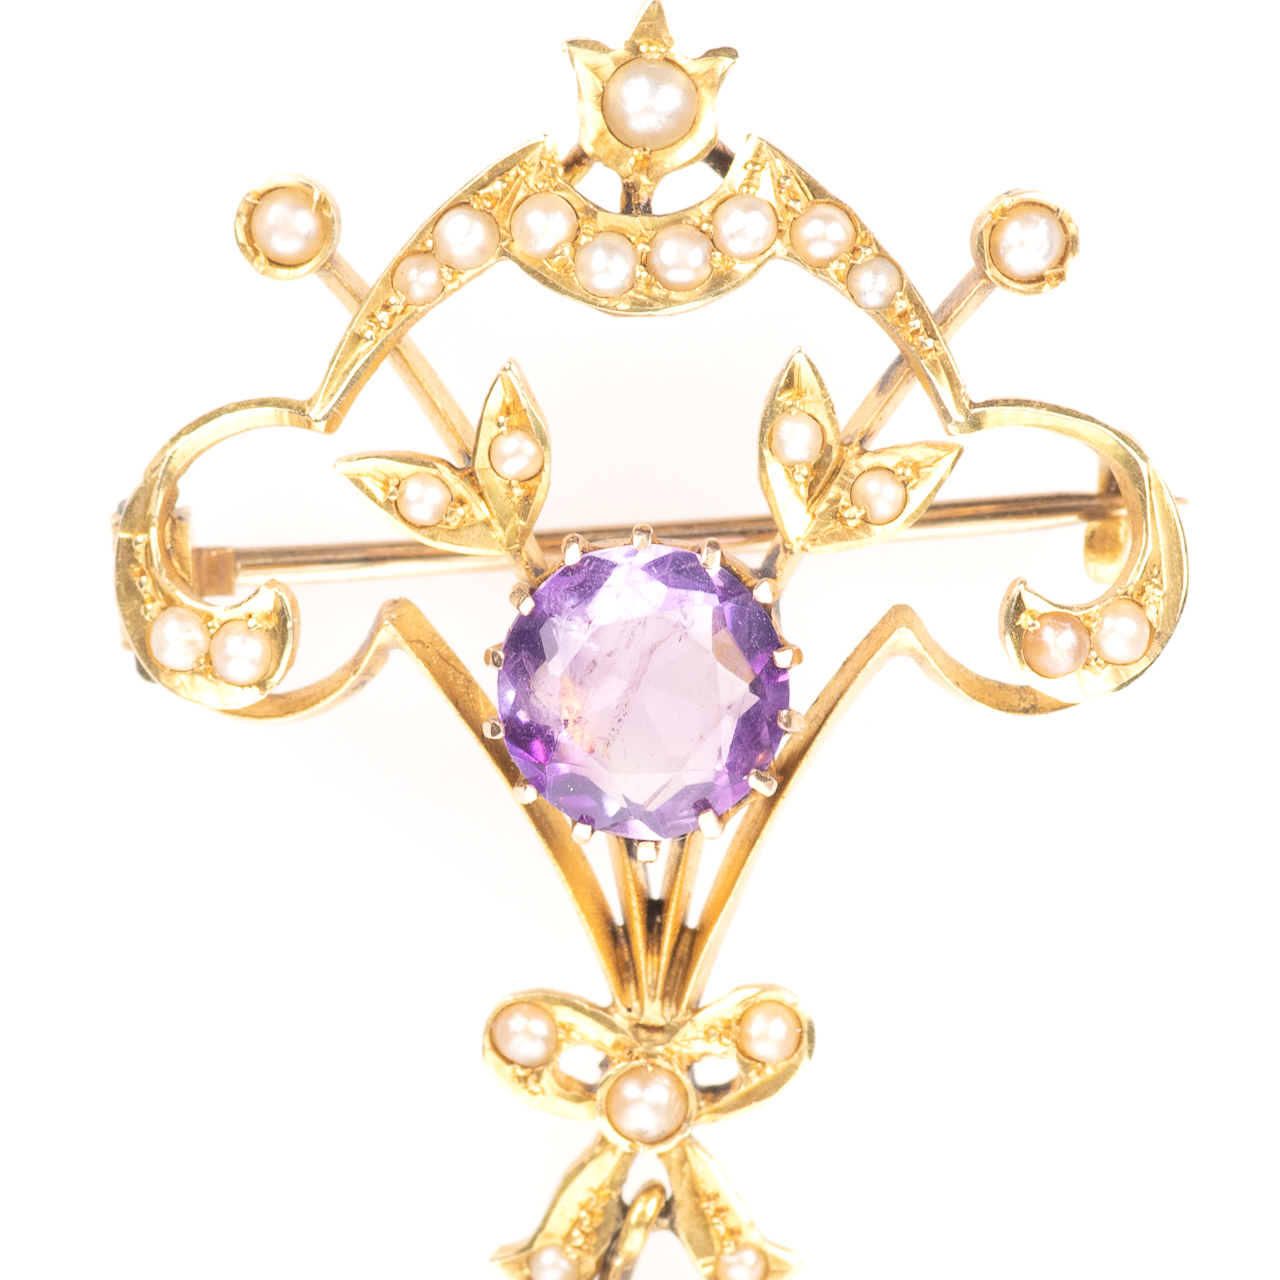 9ct Gold 3.60ct Amethyst & Pearl Art Nouveau Brooch - Image 2 of 6